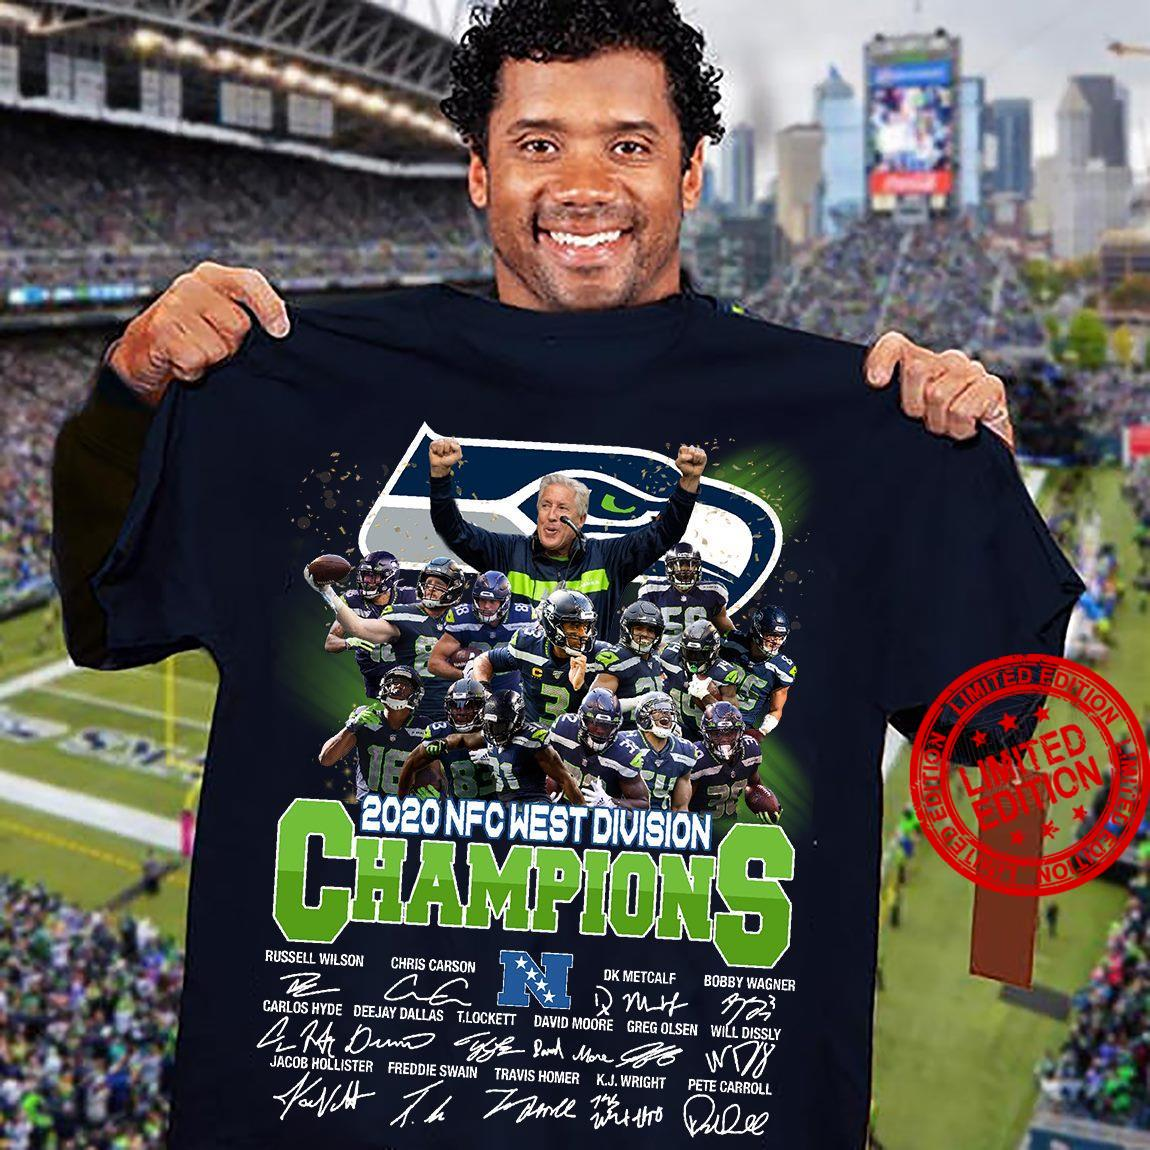 2020 NFC West Division Champions Shirt